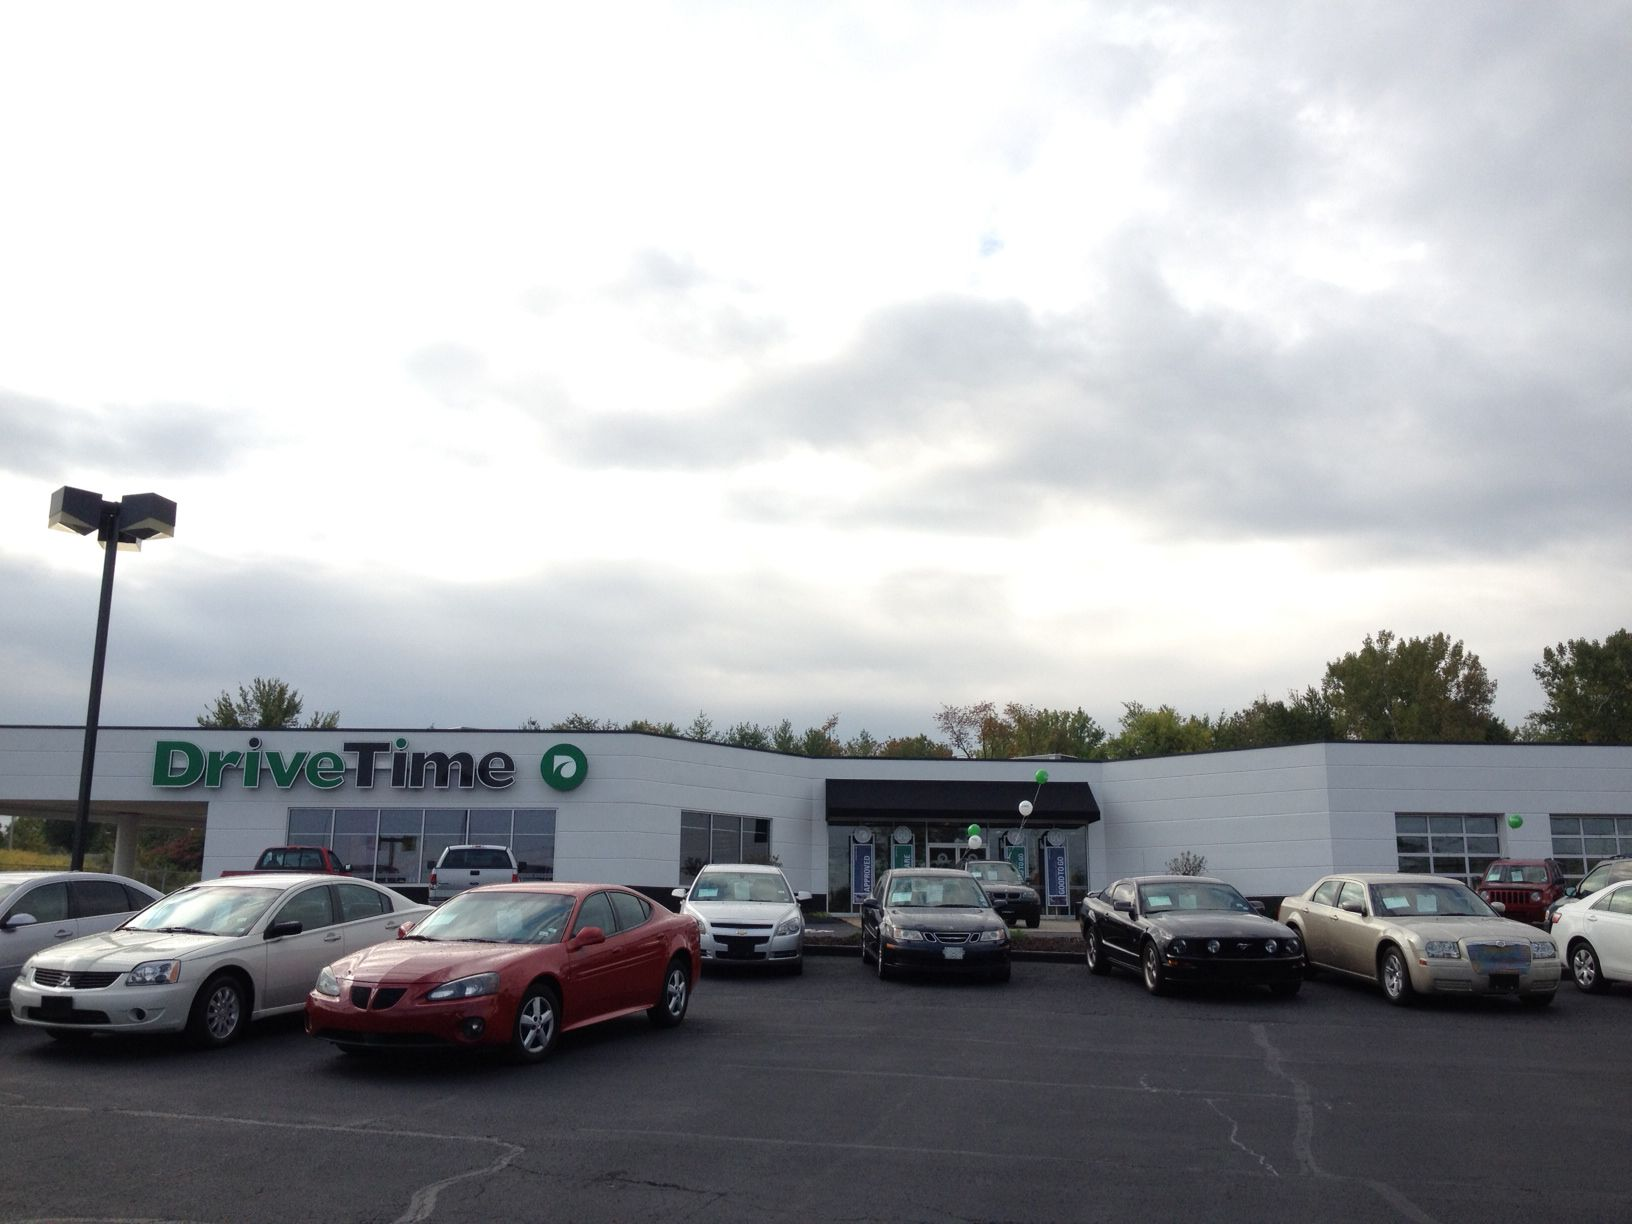 drivetime used cars in st louis mo located on the hwy 270 frontage road